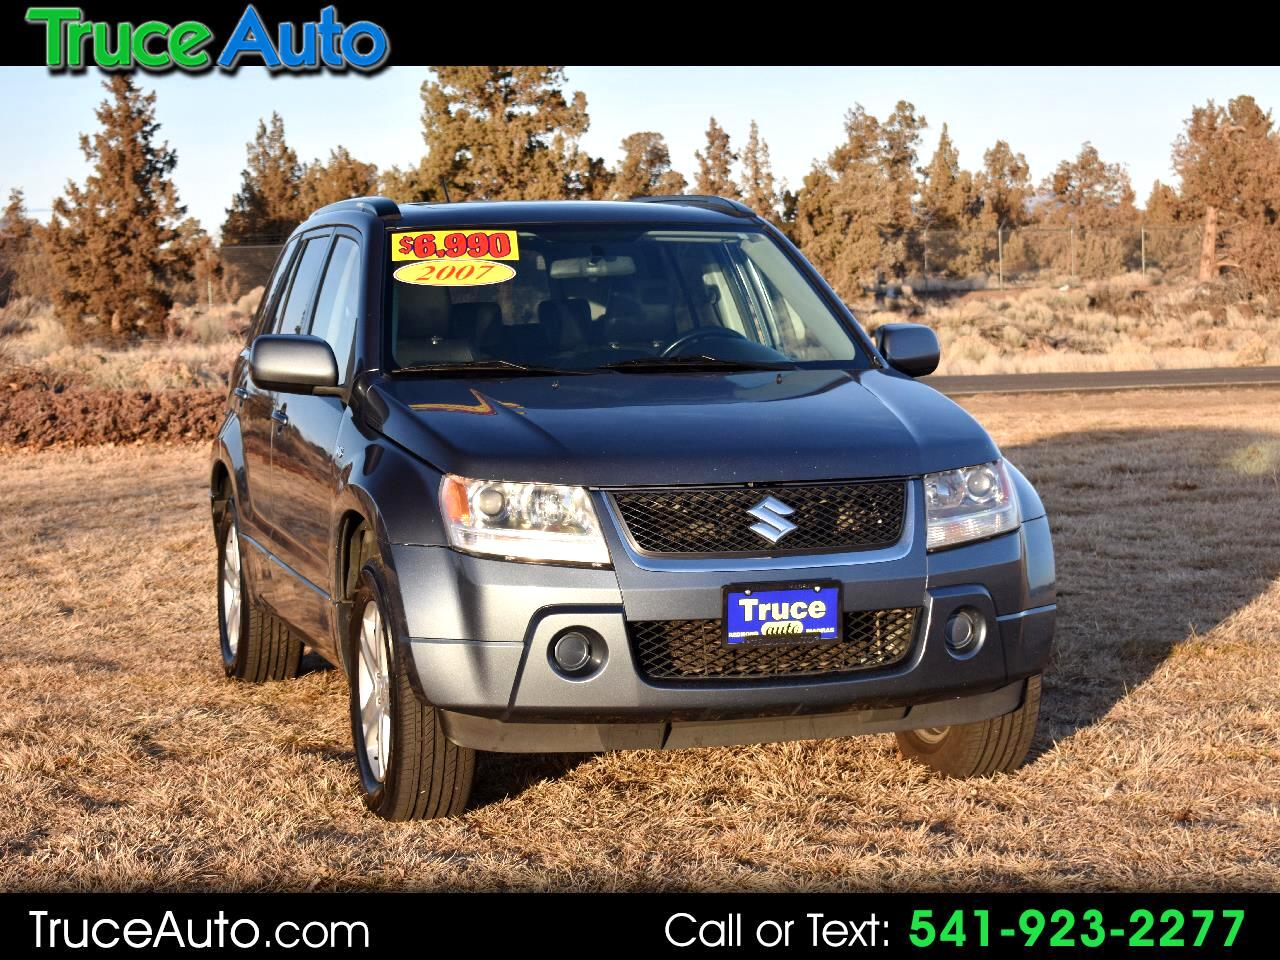 2007 Suzuki Grand Vitara Luxury 4WD ***LOW MILE***